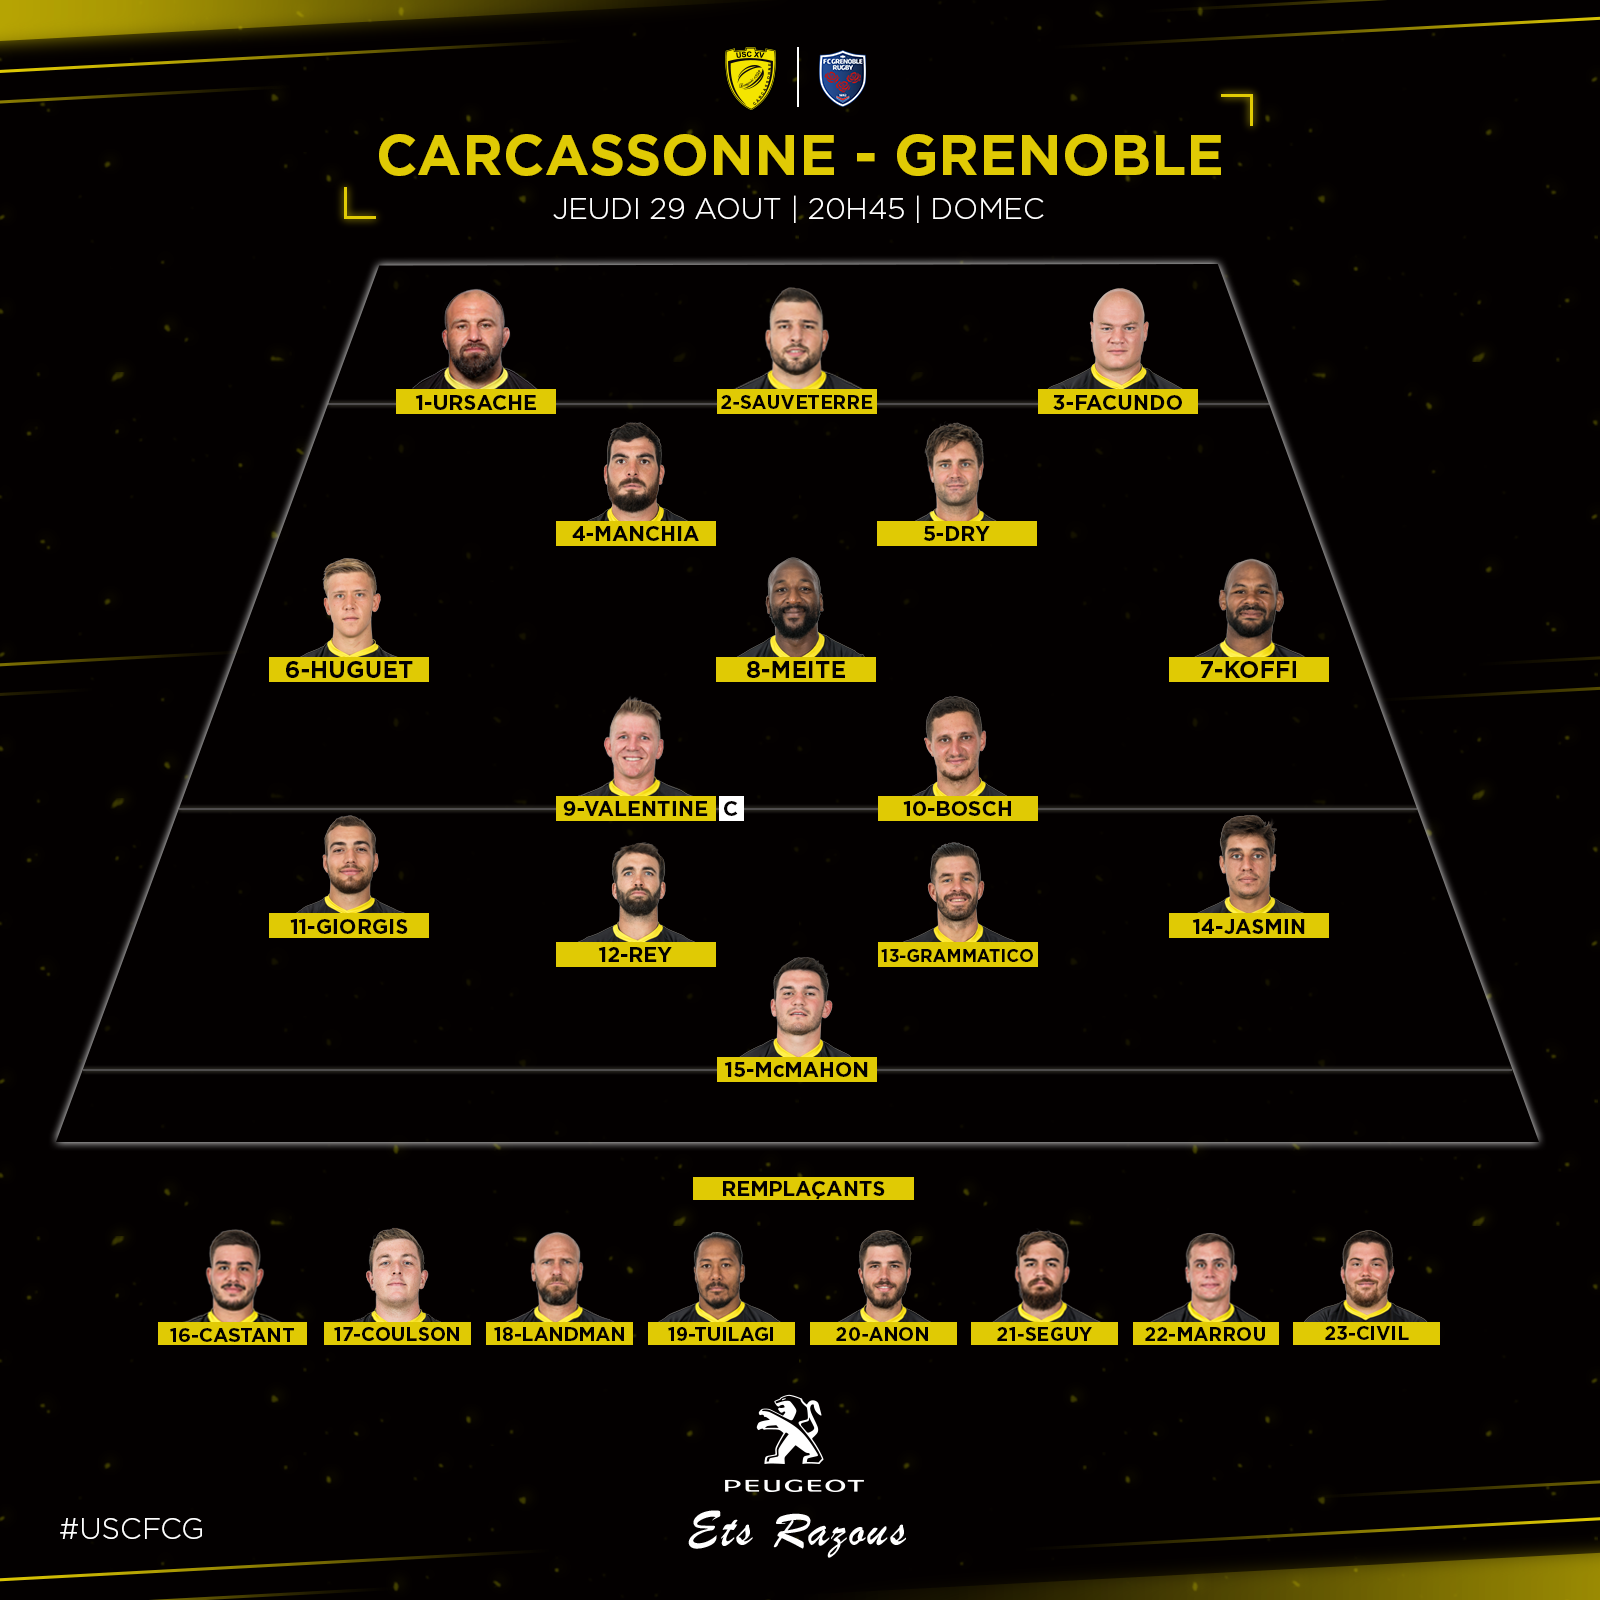 Compo Carcassonne - Grenoble